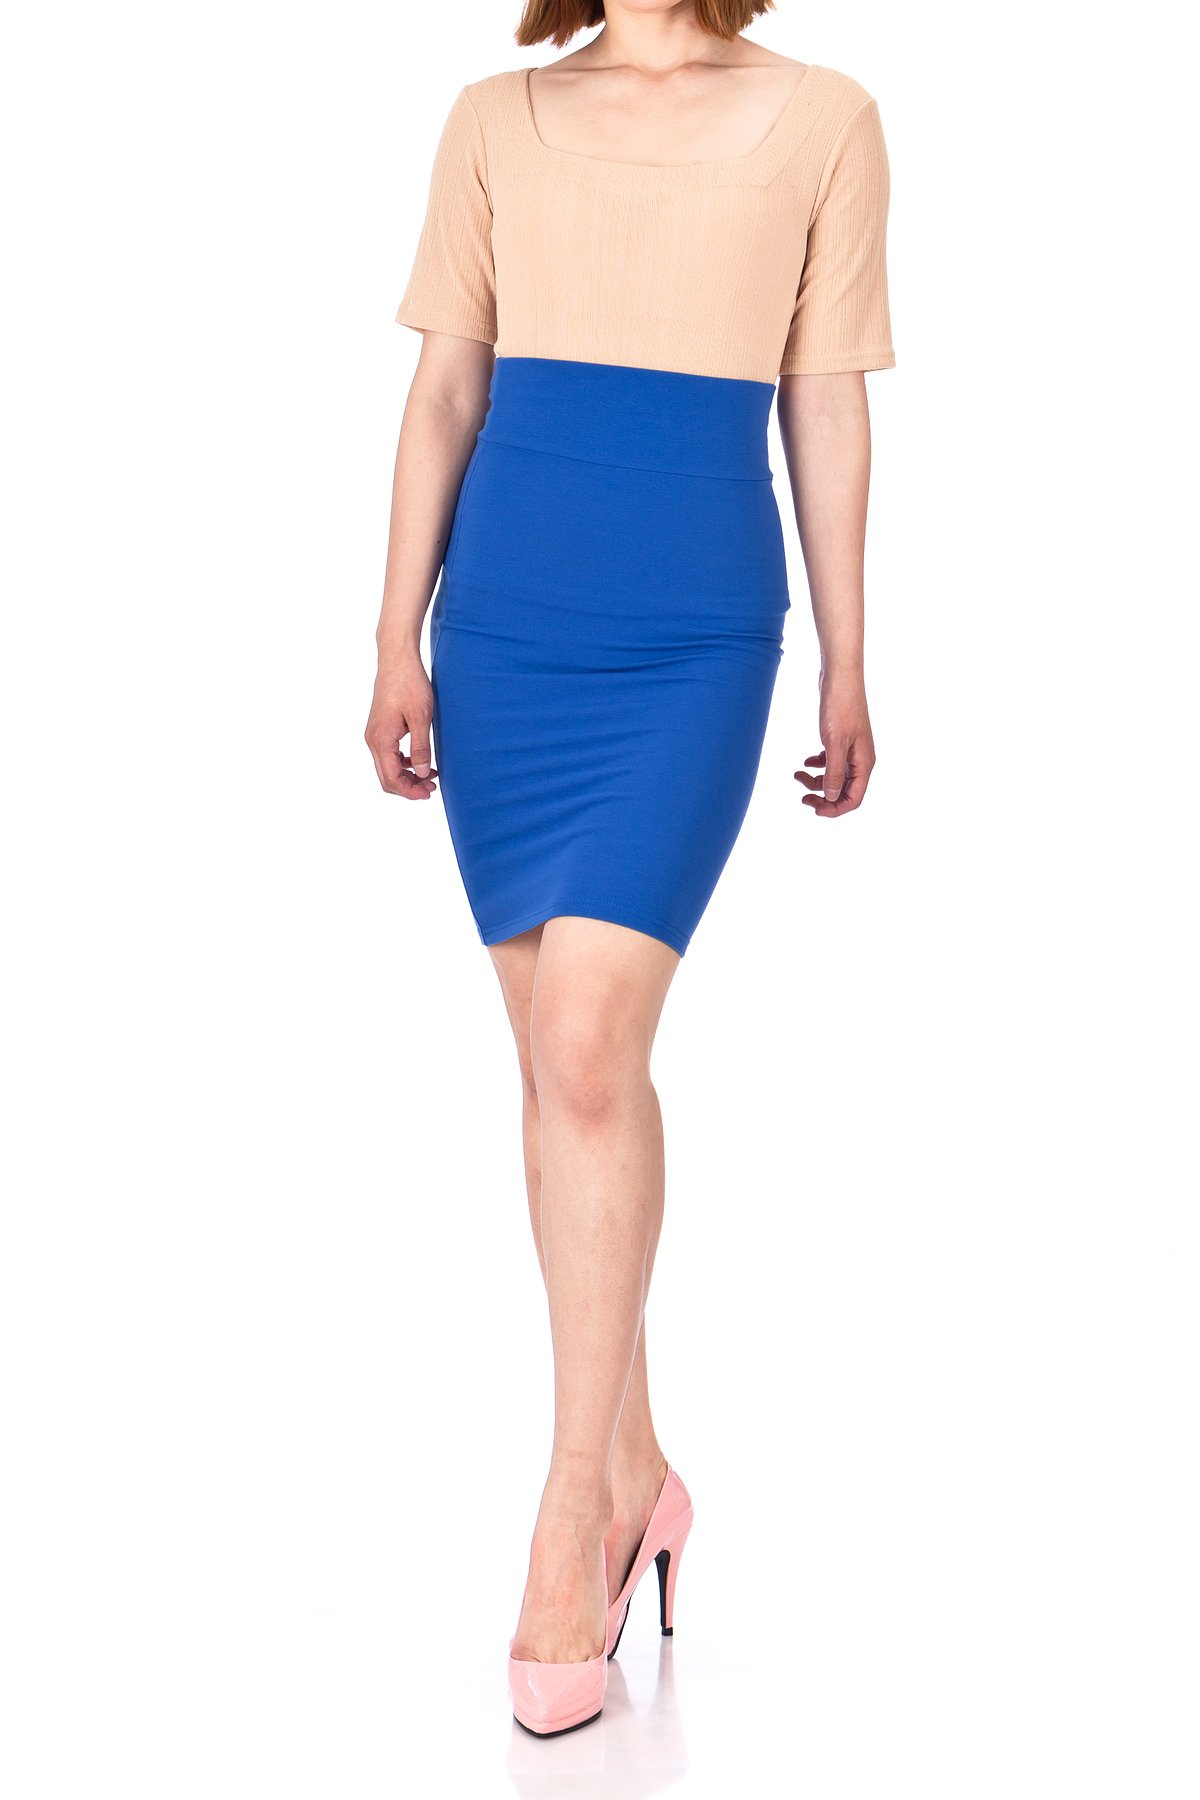 Every Occasion Stretch Pull on Wide High Waist Bodycon Pencil Knee Length Midi Skirt Royal Blue 01